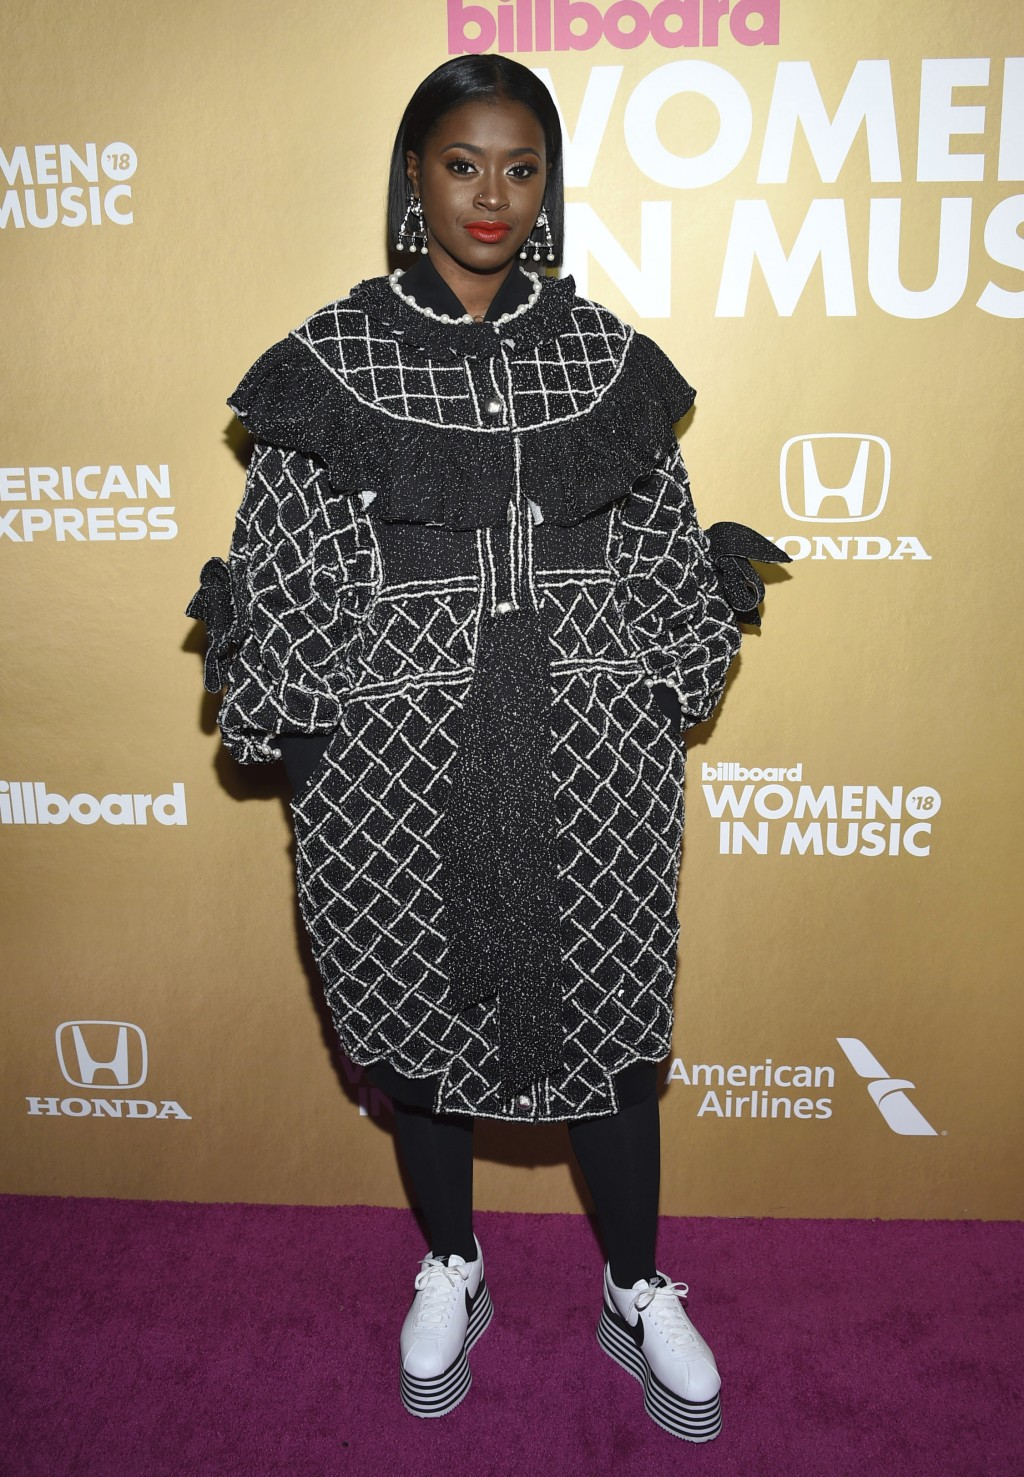 Tierra Whack attends the 13th annual Billboard Women in Music event at Pier 36 on Thursday, Dec. 6, 2018, in New York. (Photo by Evan Agostini/Invisio